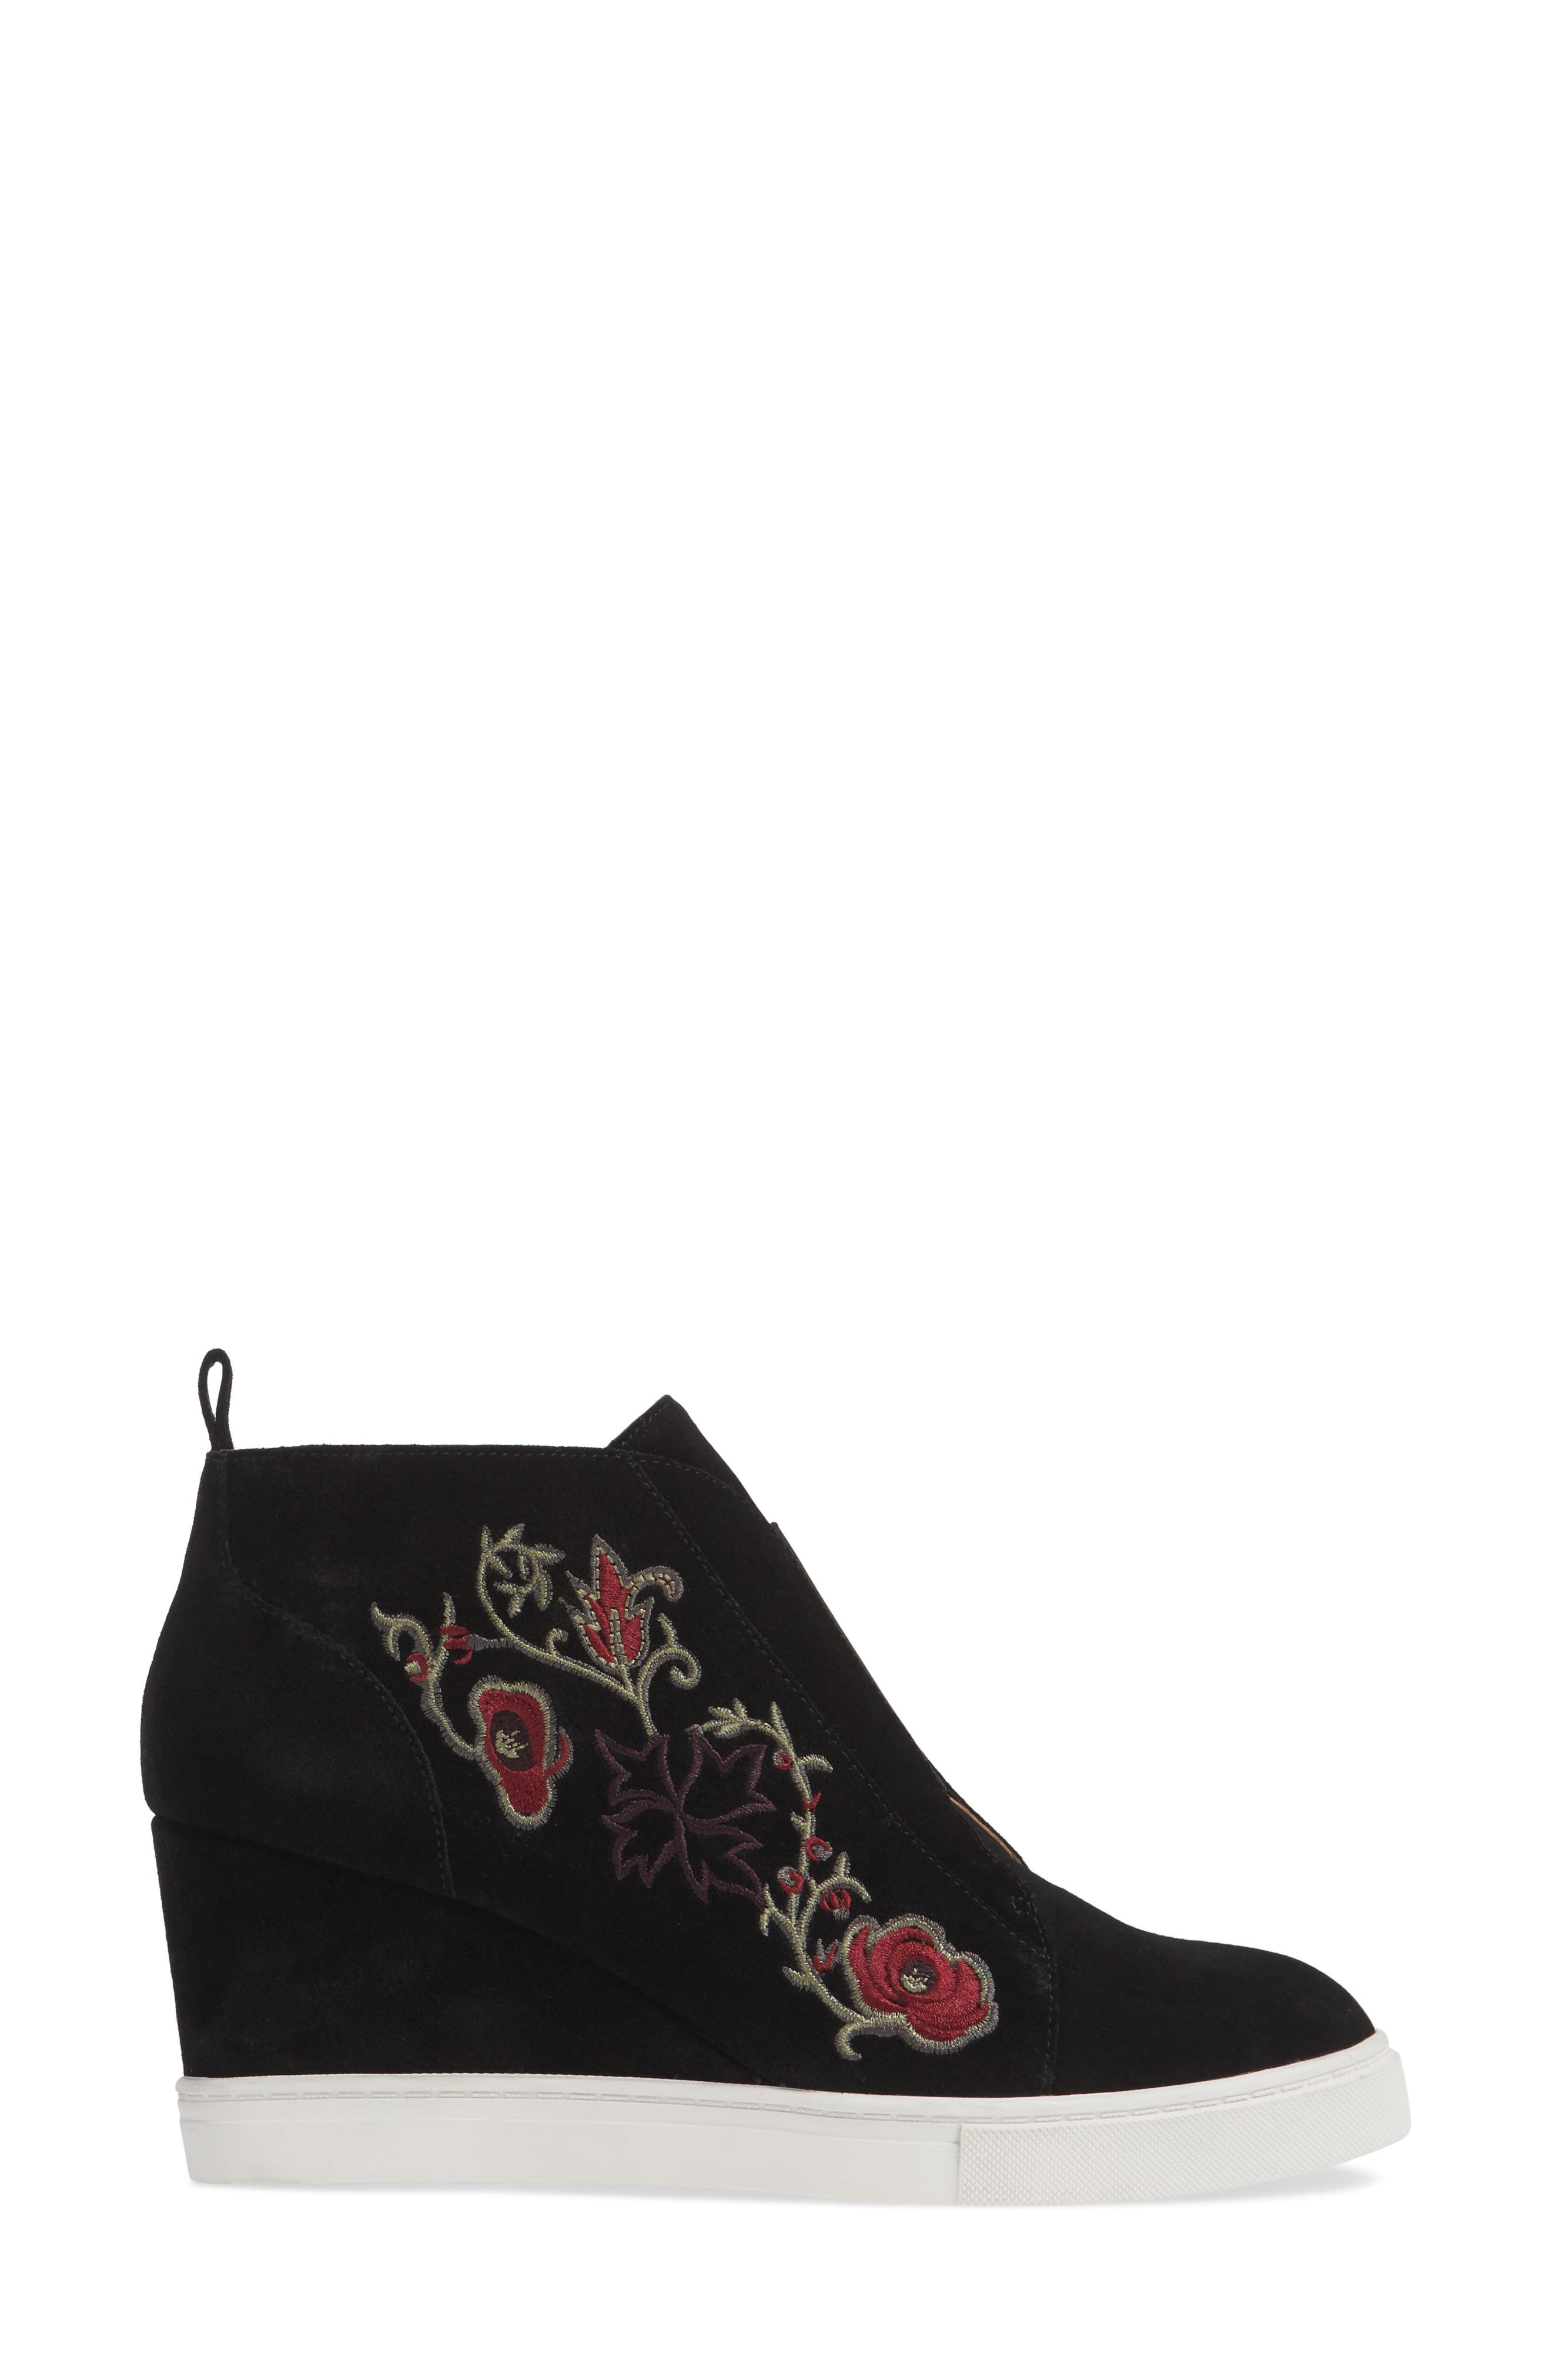 Felicia II Wedge Bootie,                             Alternate thumbnail 3, color,                             BLACK/ BLACK EMBROIDERY SUEDE